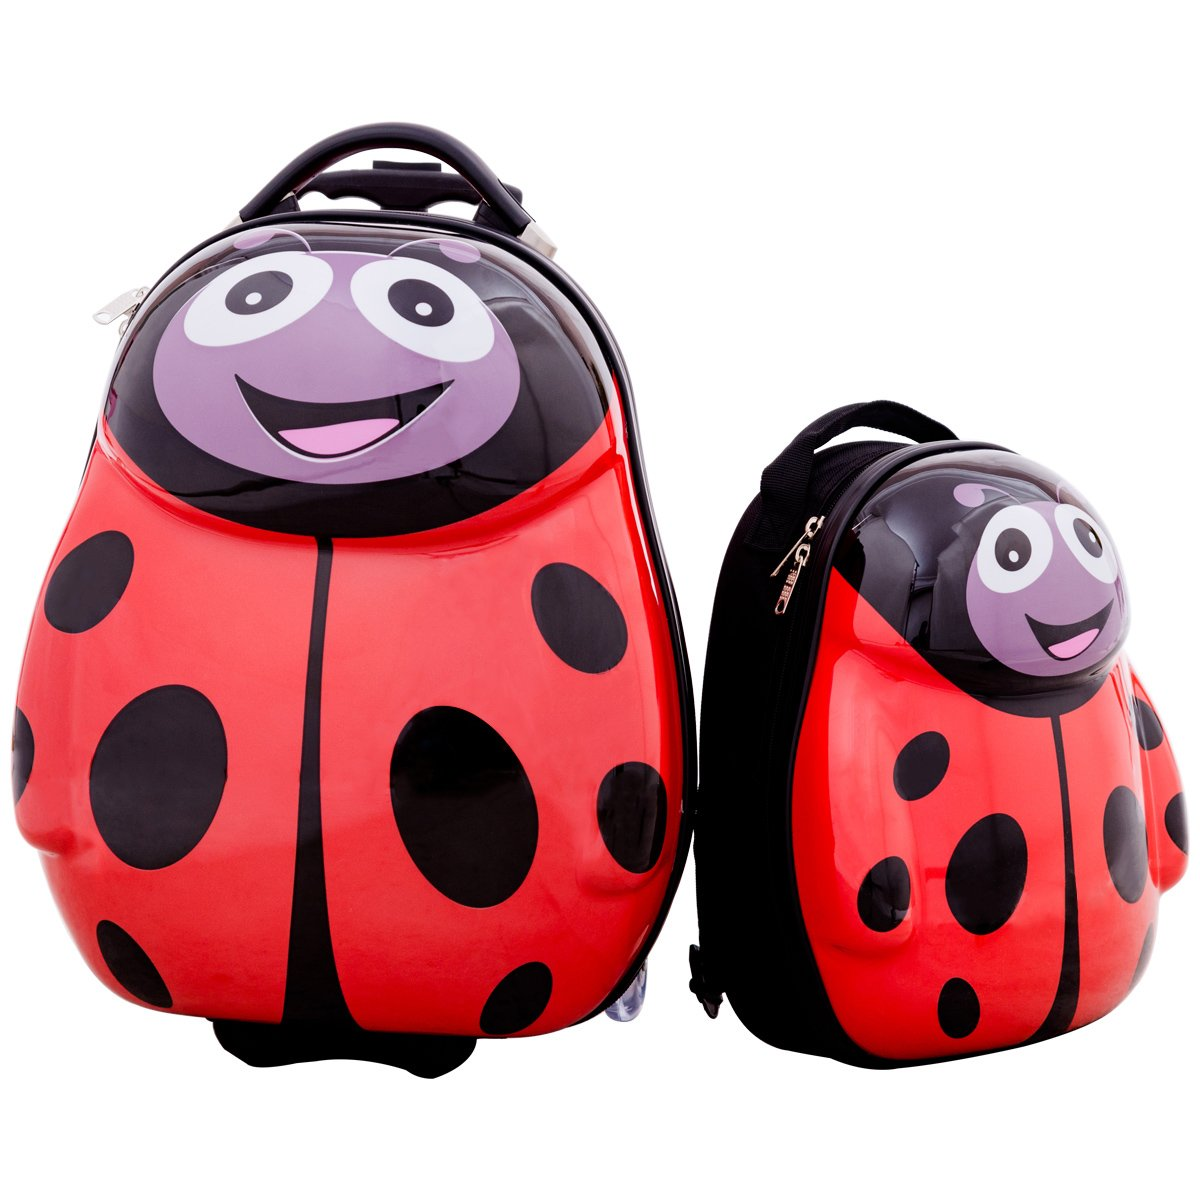 HONEY JOY 2Pc 13'' 19'' Kids Carry On Luggage Set Travel Trolley Suitcase for Boys and Girls (Ladybug)